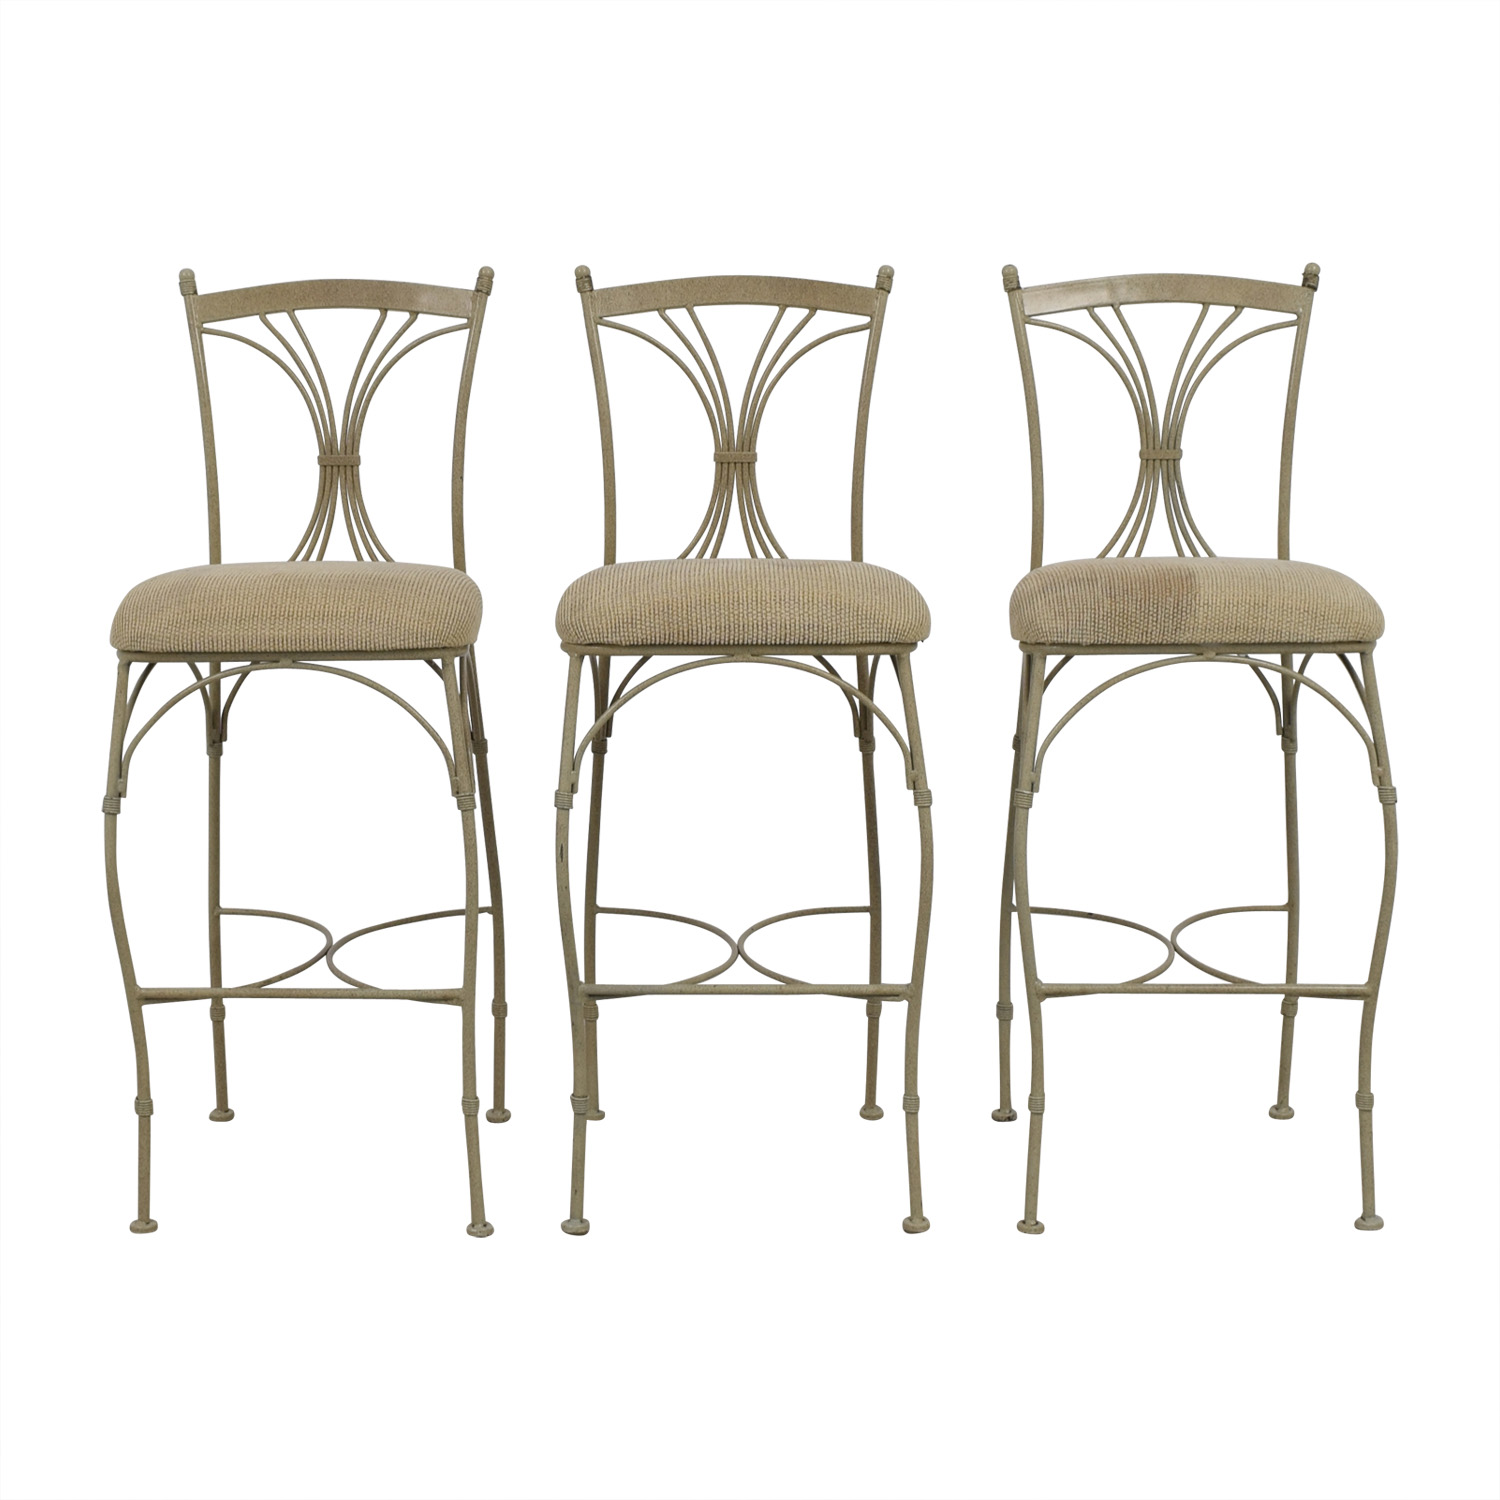 buy HomeGoods Tan & Metal Bar Stools HomeGoods